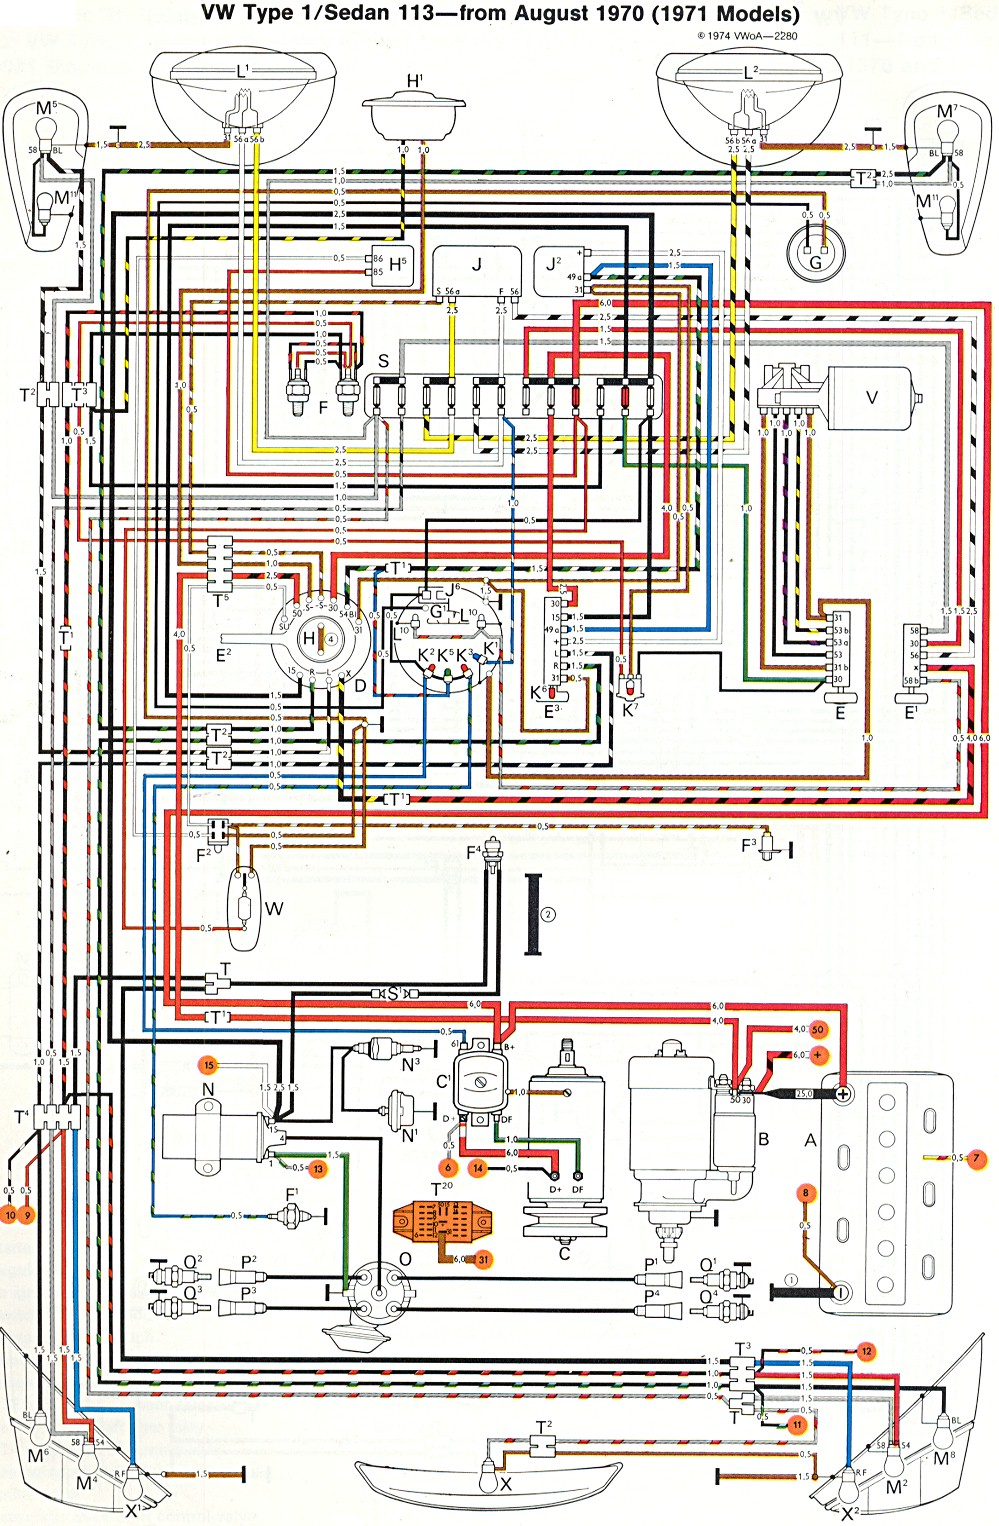 bug_super_71 1971 super beetle wiring diagram thegoldenbug com volkswagen 2002 beetle wiring diagram at edmiracle.co